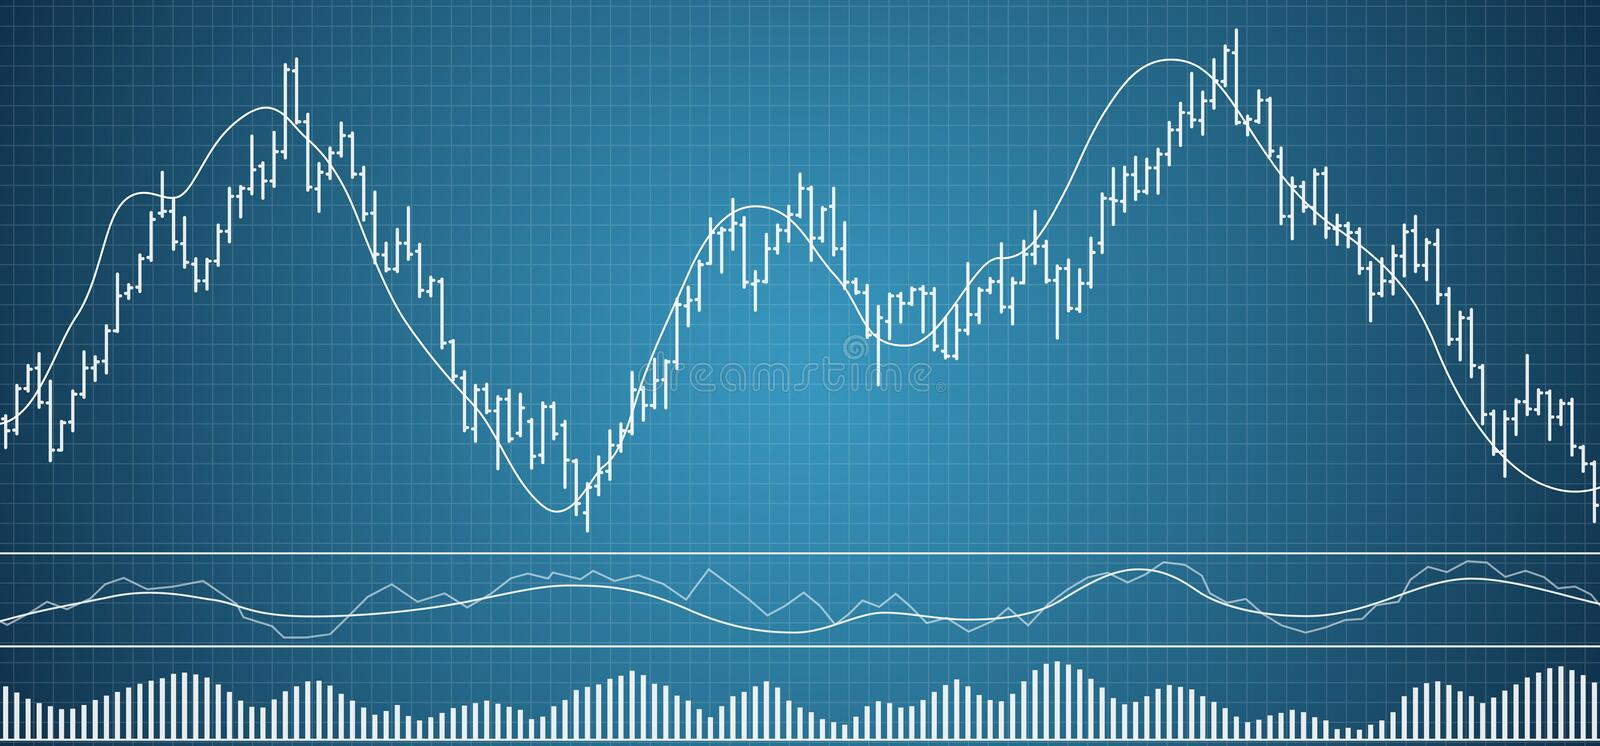 Bar financial data graph. Forex stock crypto currency data visualization. stock illustration